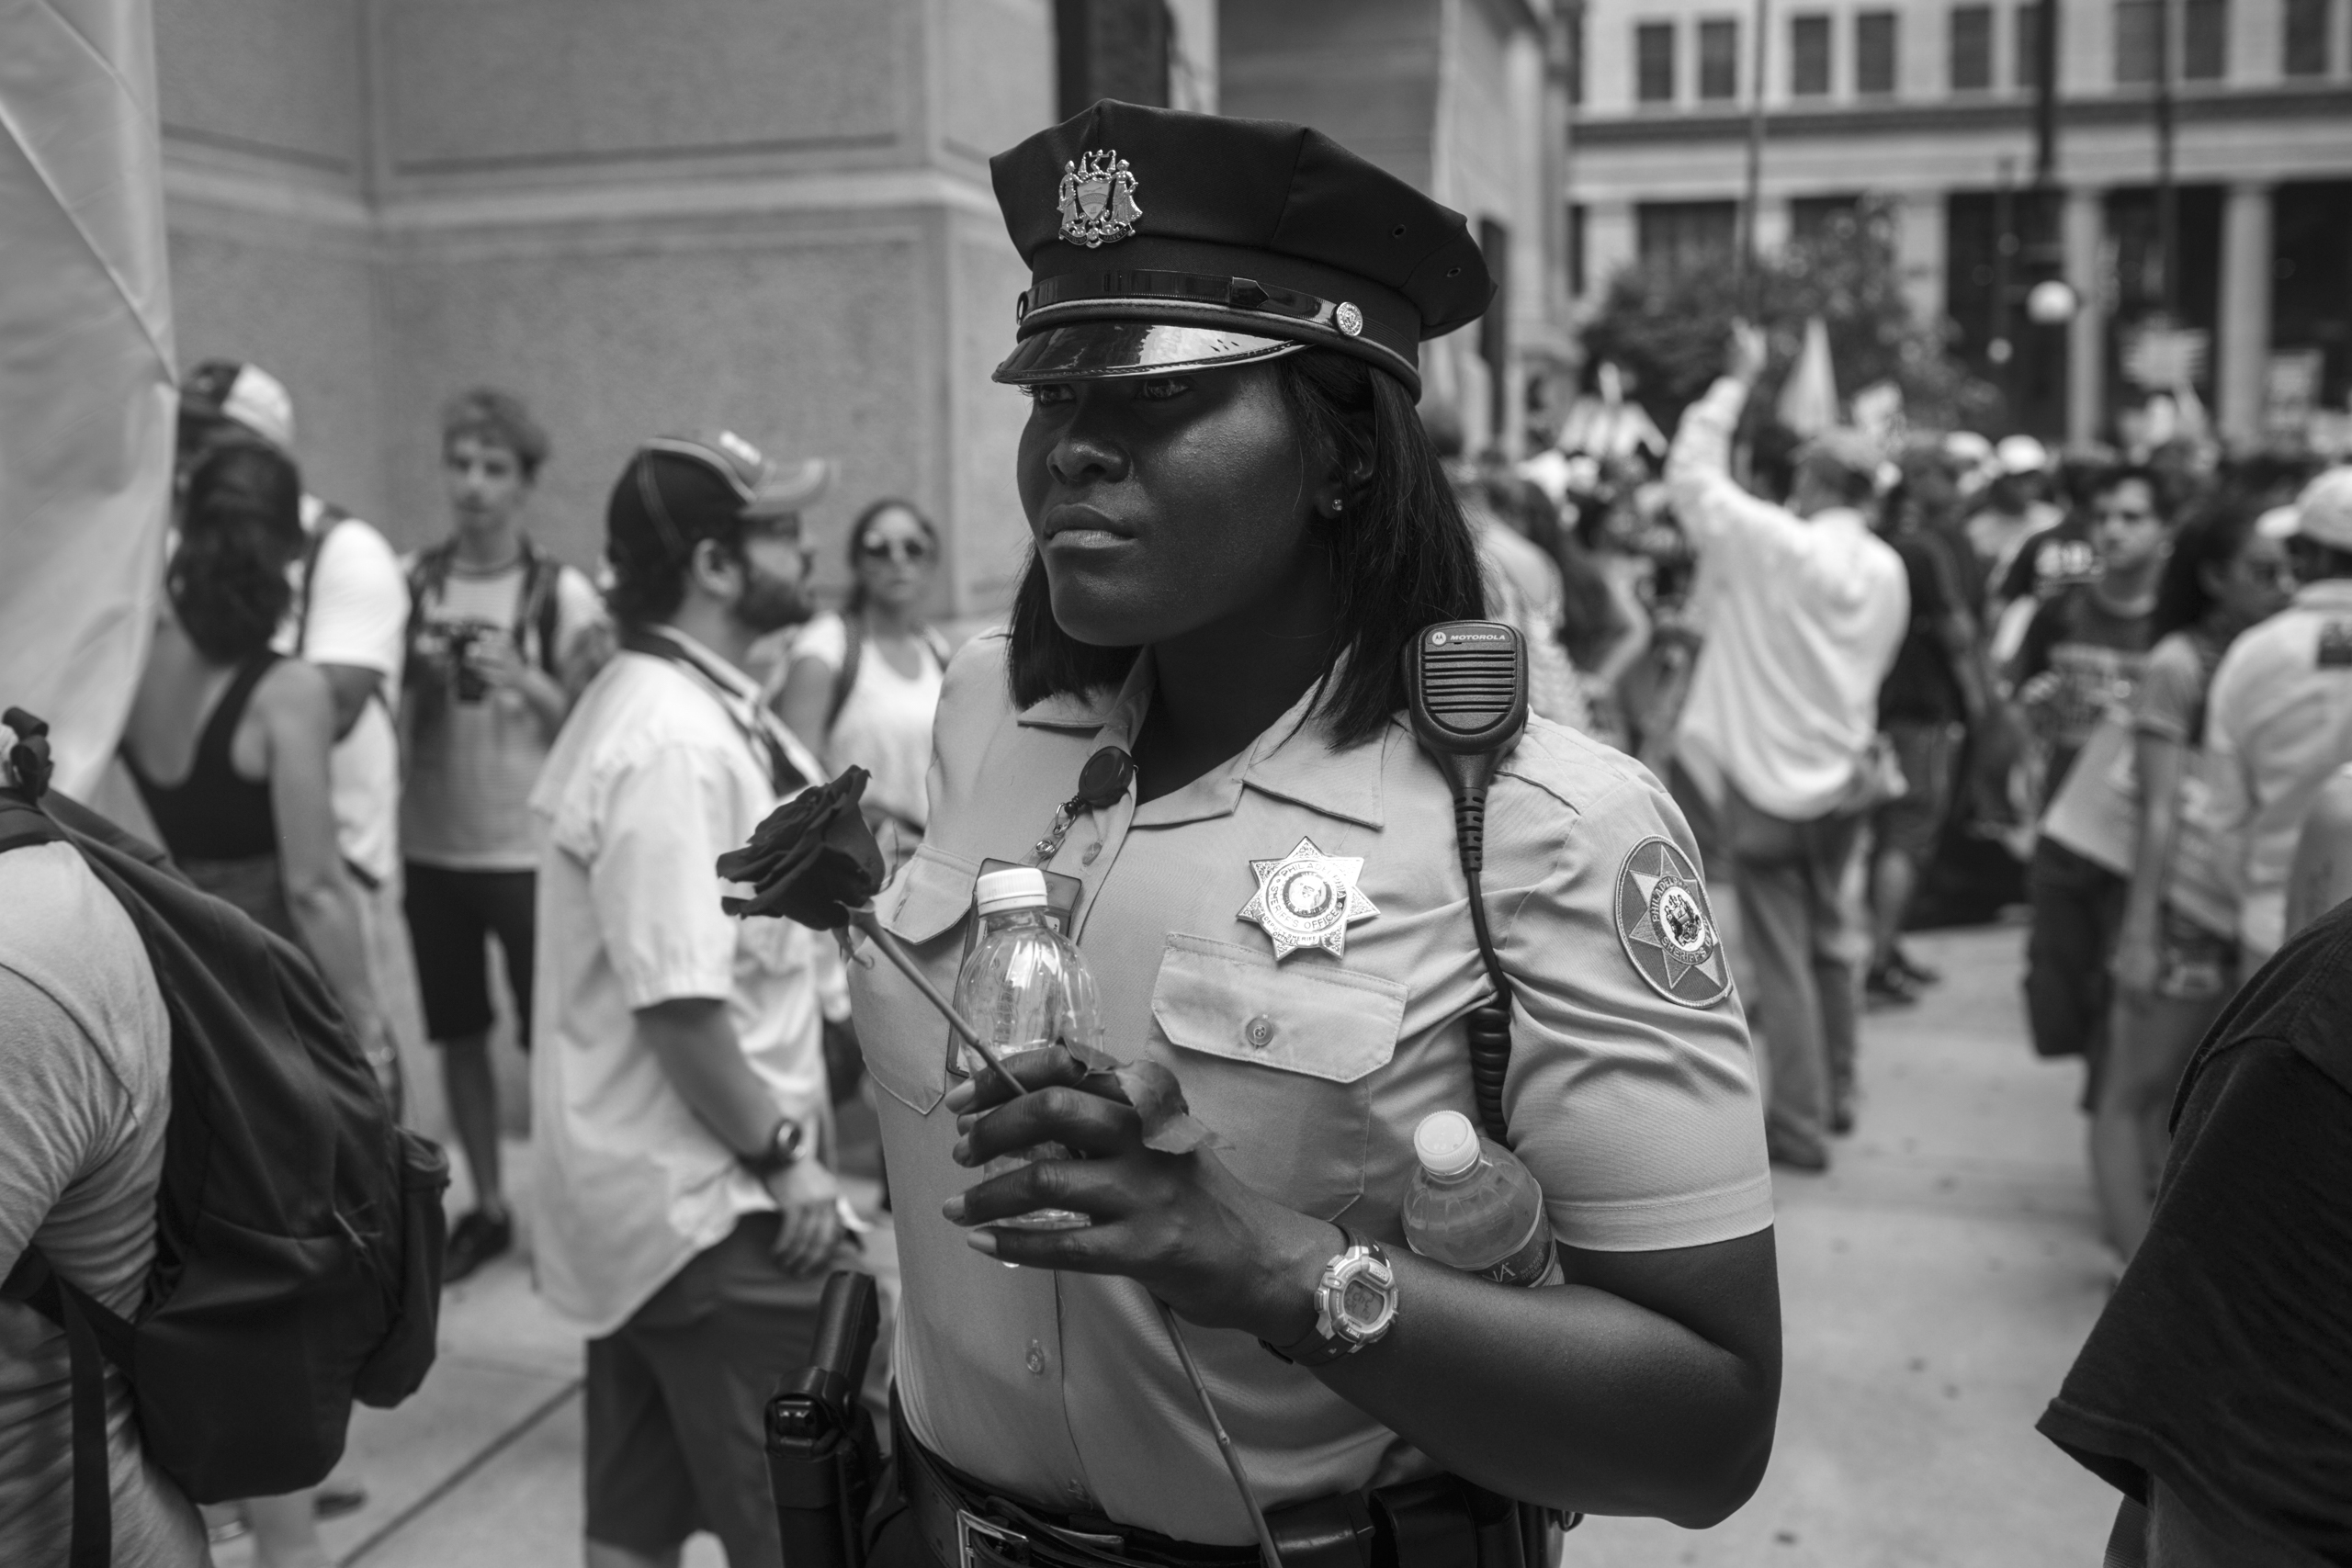 25 July 2016 - Philadelphia, PA - A police officer is holding a rose, while people gather for a rally at City Hall on the first day of the Democratic National Convention.